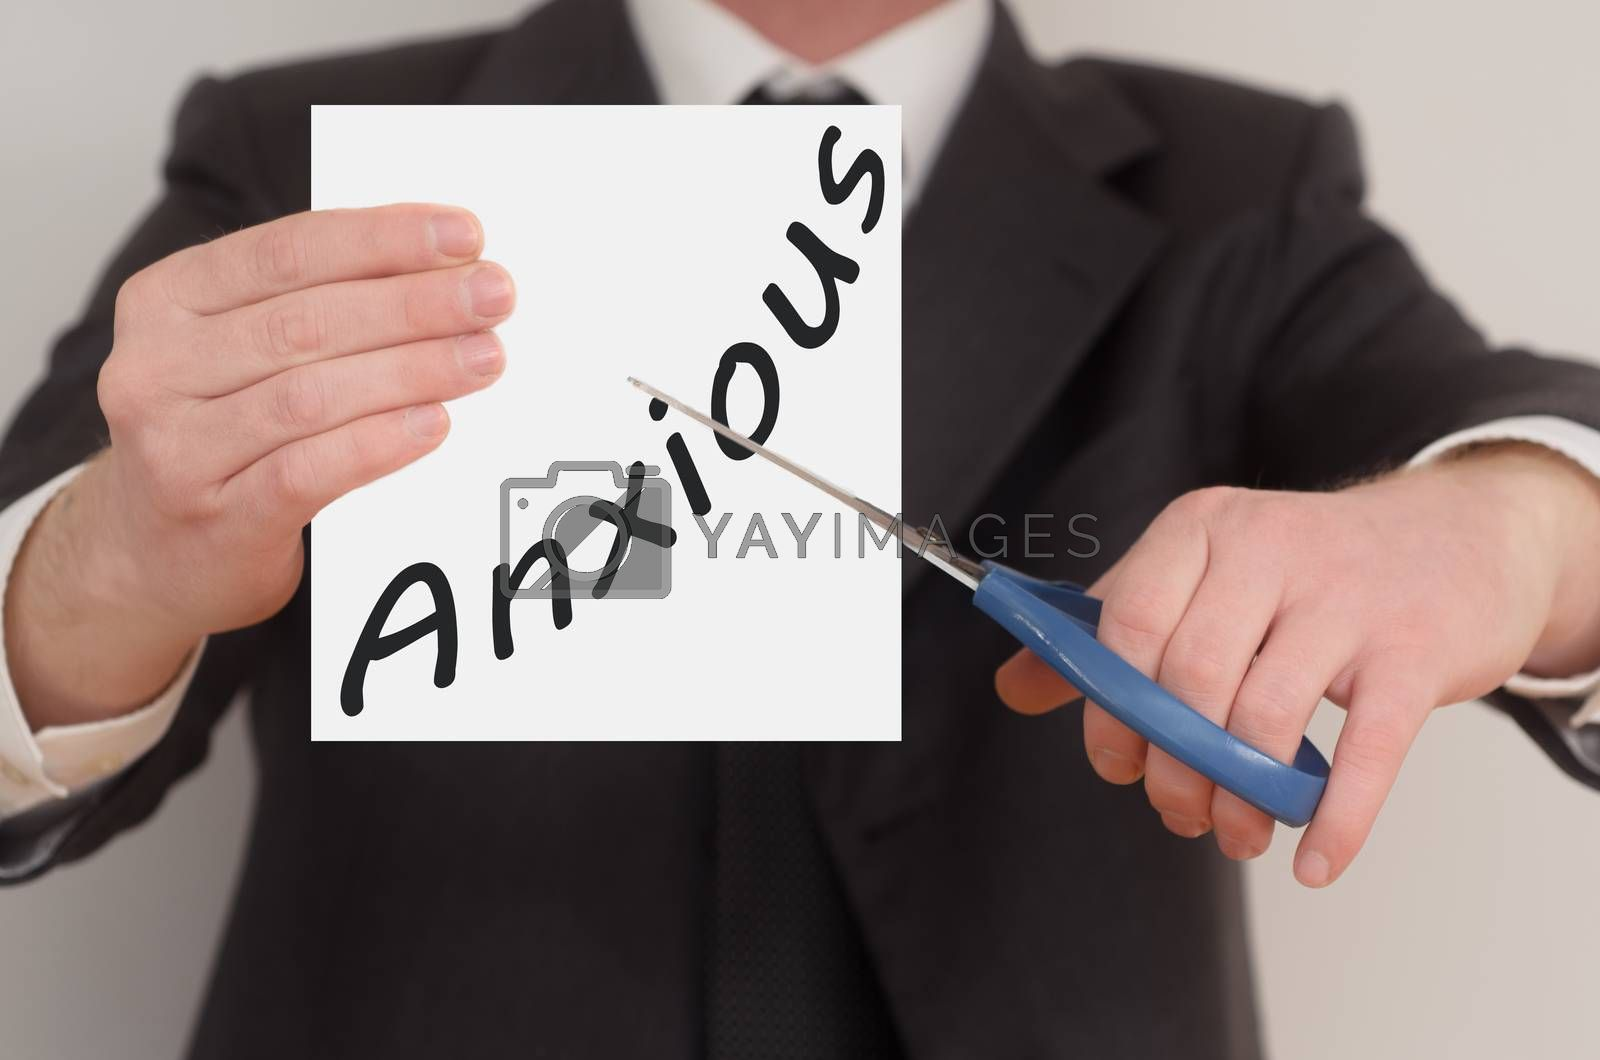 Anxious, man in suit cutting text on paper with scissors